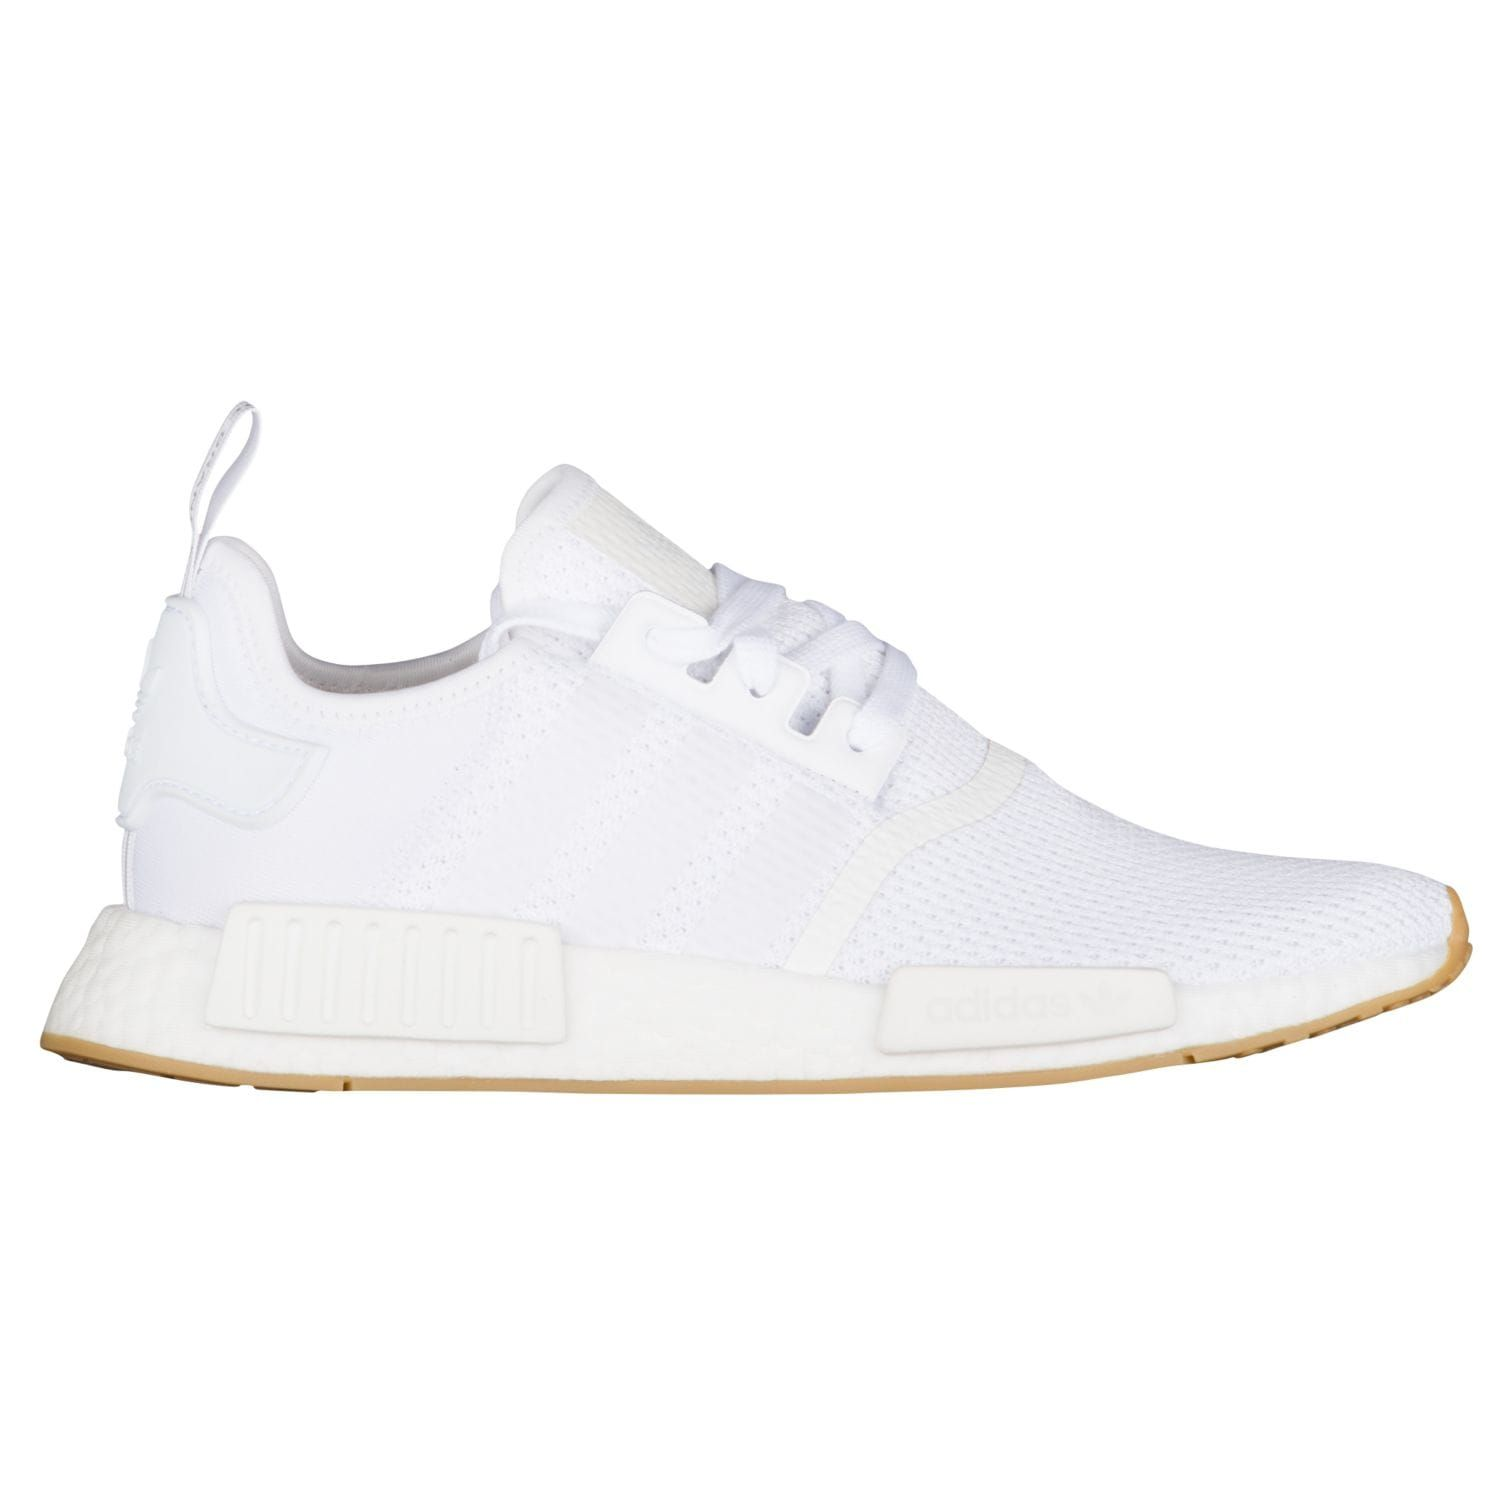 fd1b682f7 adidas Originals NMD R1 - Men s - Casual - Shoes - Sesame Chalk Pearl Black